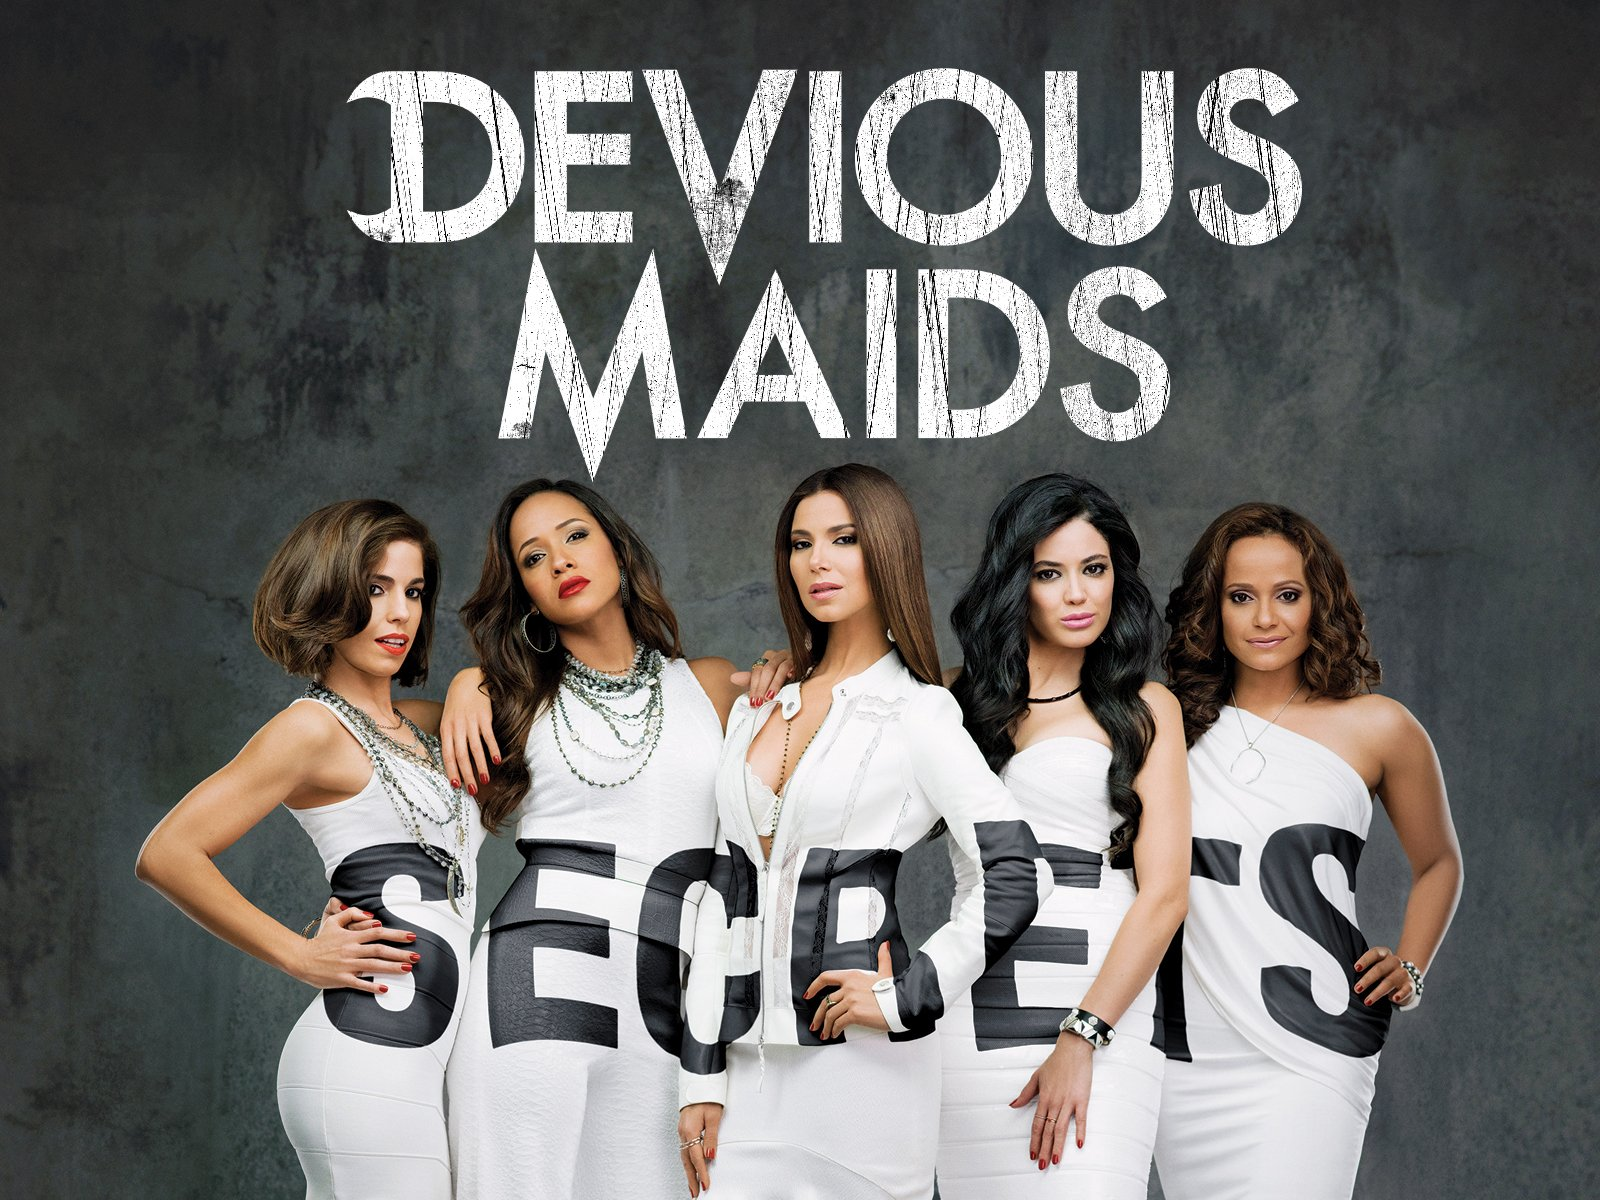 devious maids season 2 episode 4 watch online